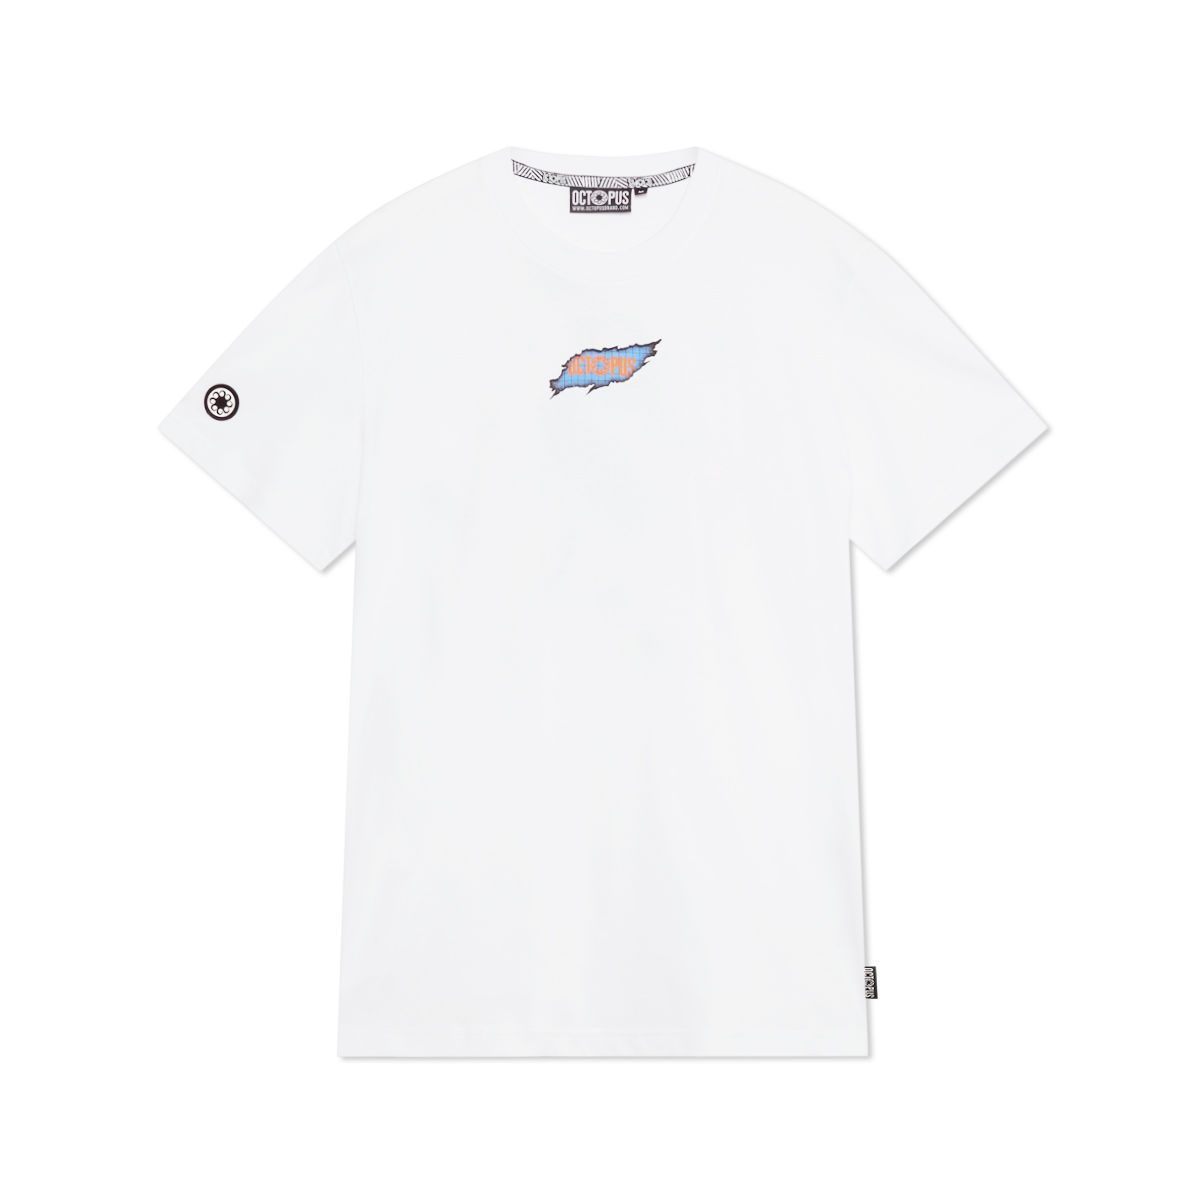 RIPPER LOGO TEE WHITE